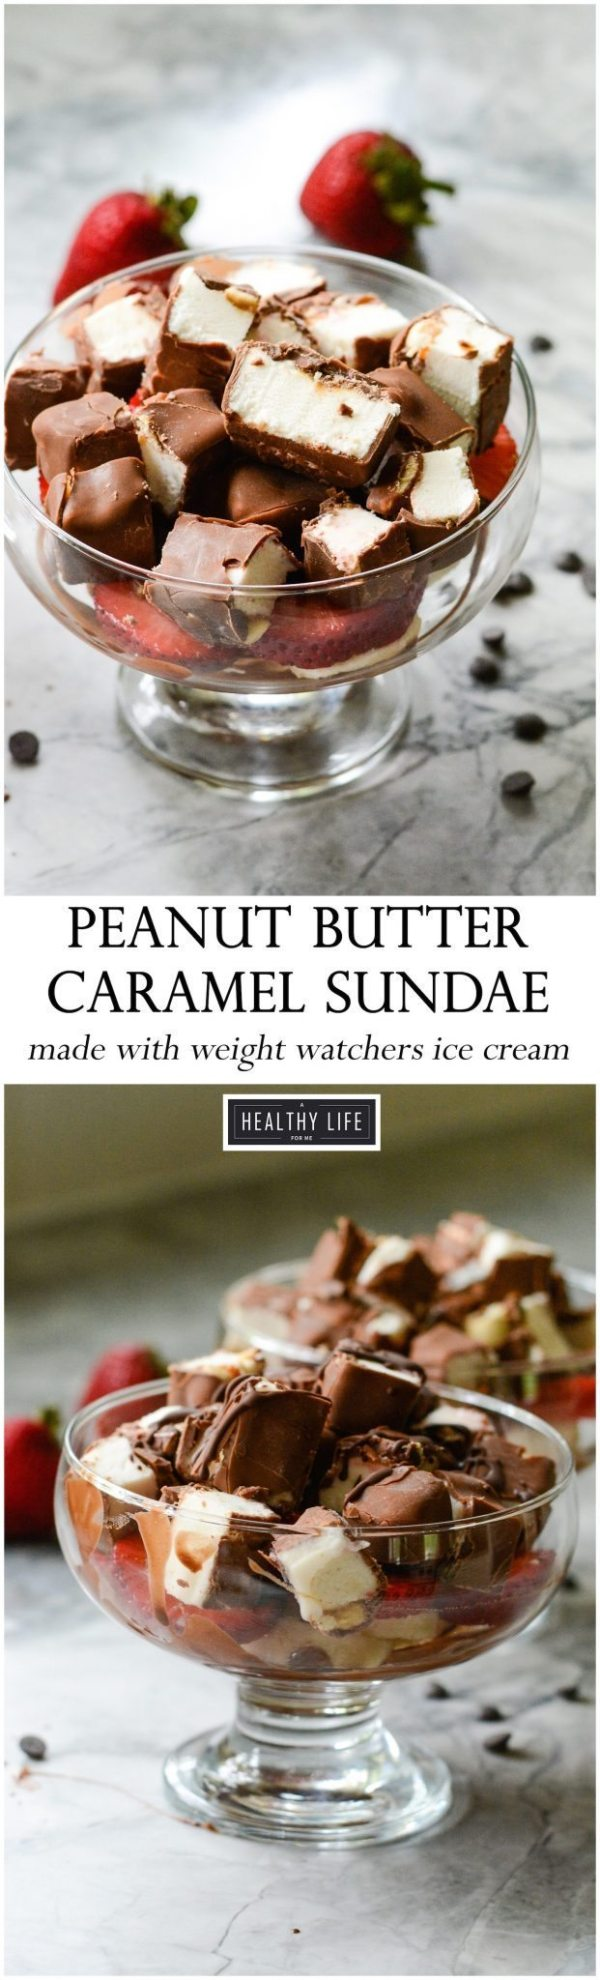 Peanut Butter Caramel Sundae is the perfect cold, sweet, decadent treat that you can enjoy guilt free | ahealthylifeforme.com